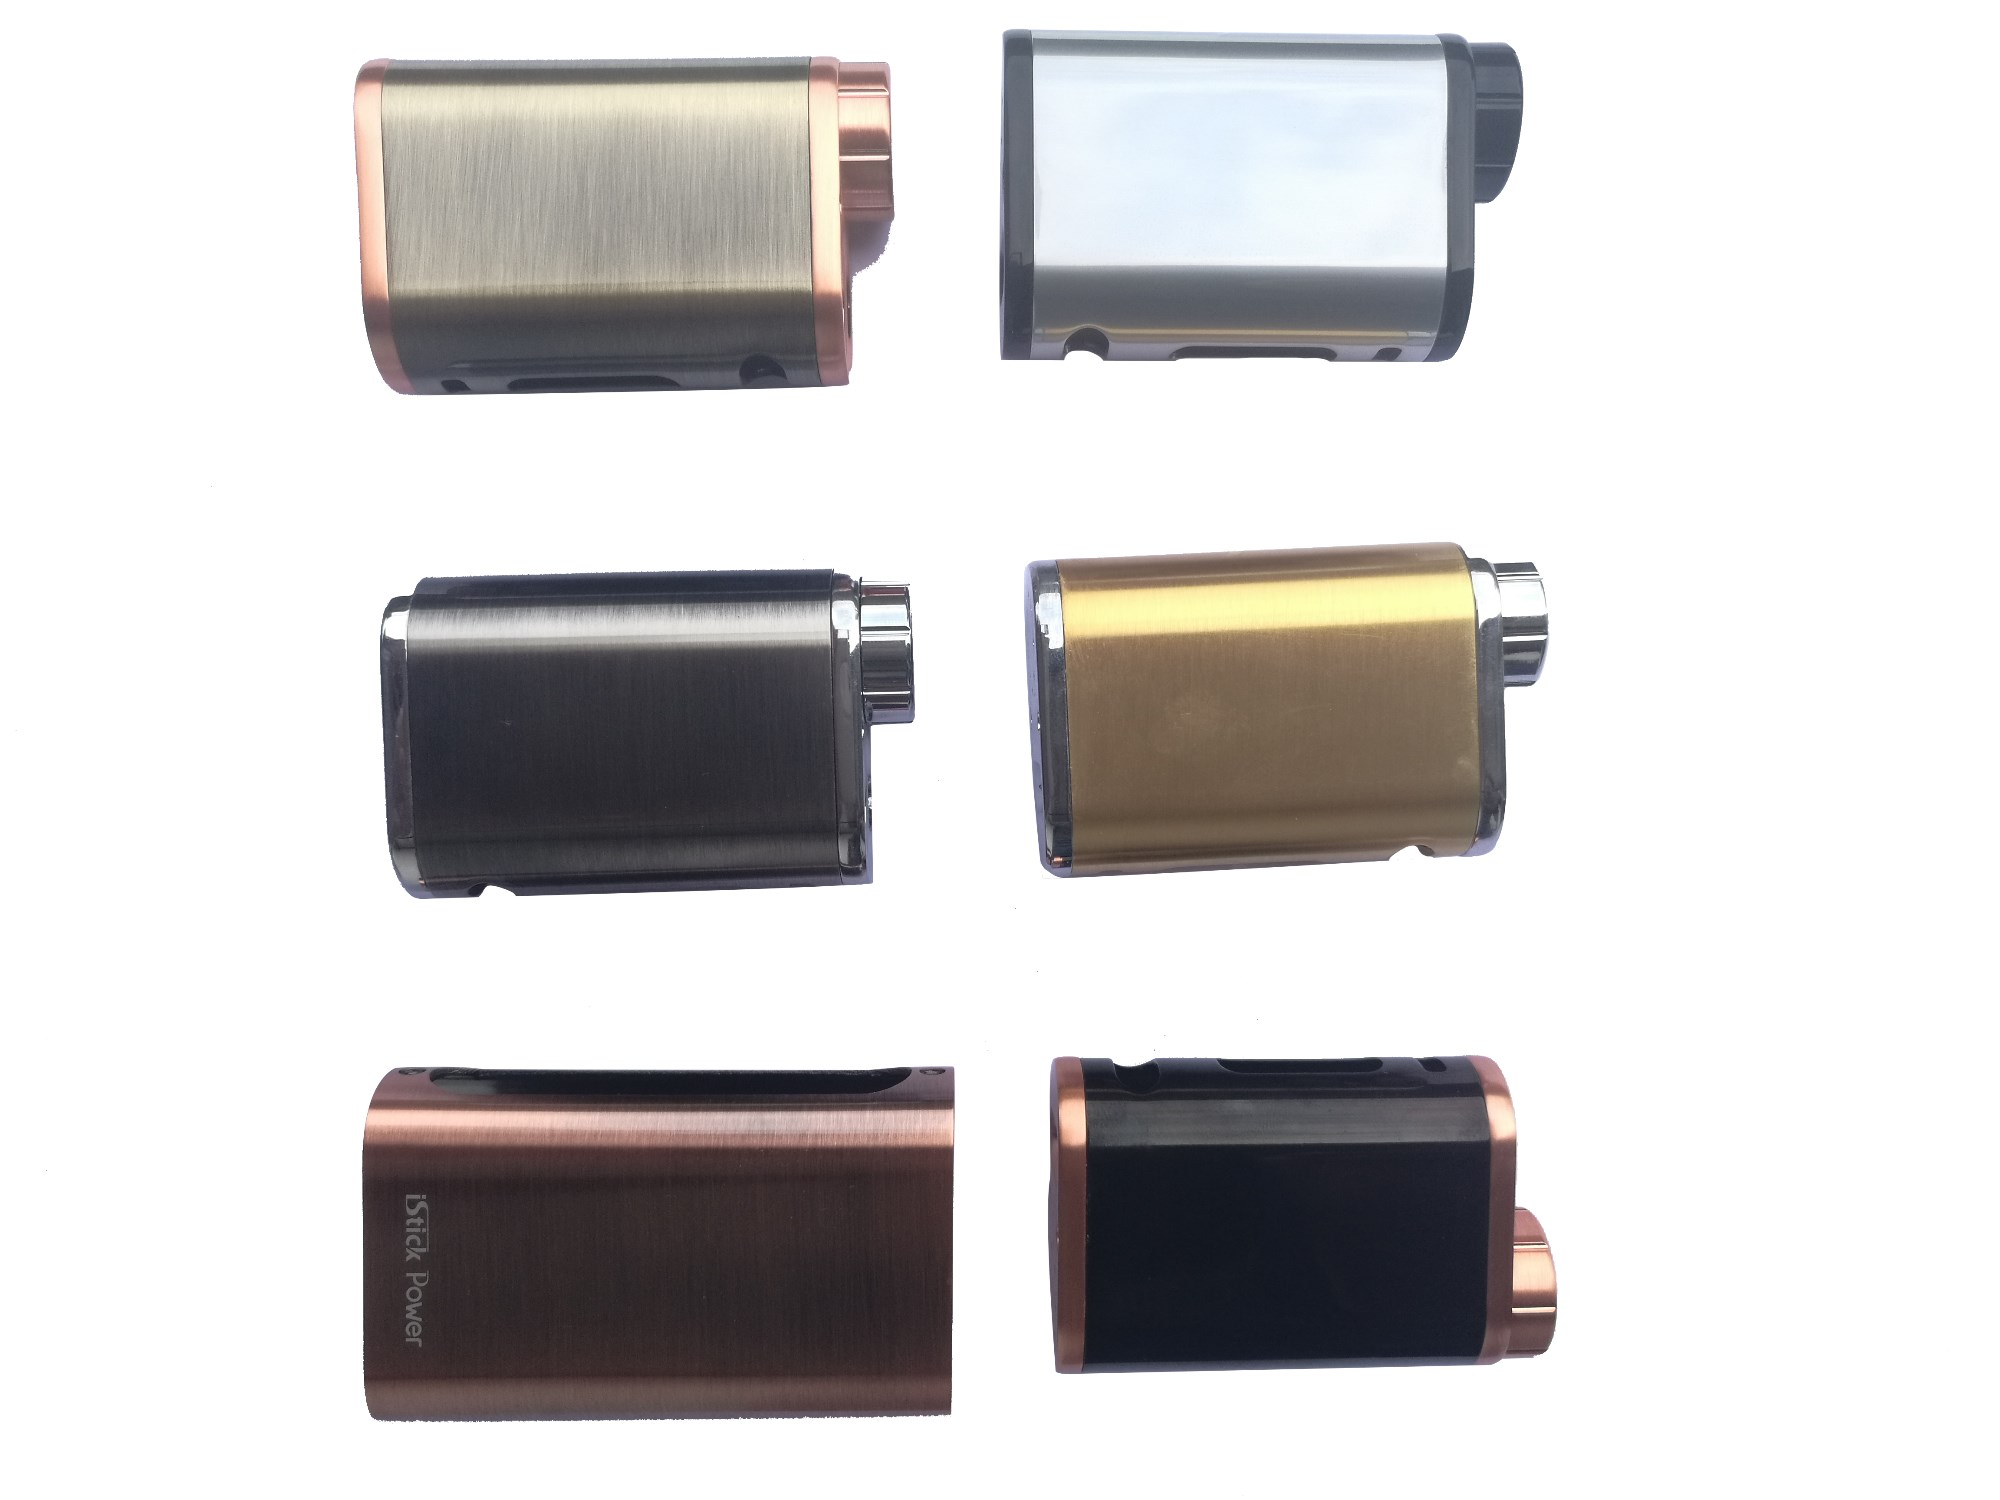 Anodizing Surface Treatment Manufacturers, Anodizing Surface Treatment Factory, Supply Anodizing Surface Treatment